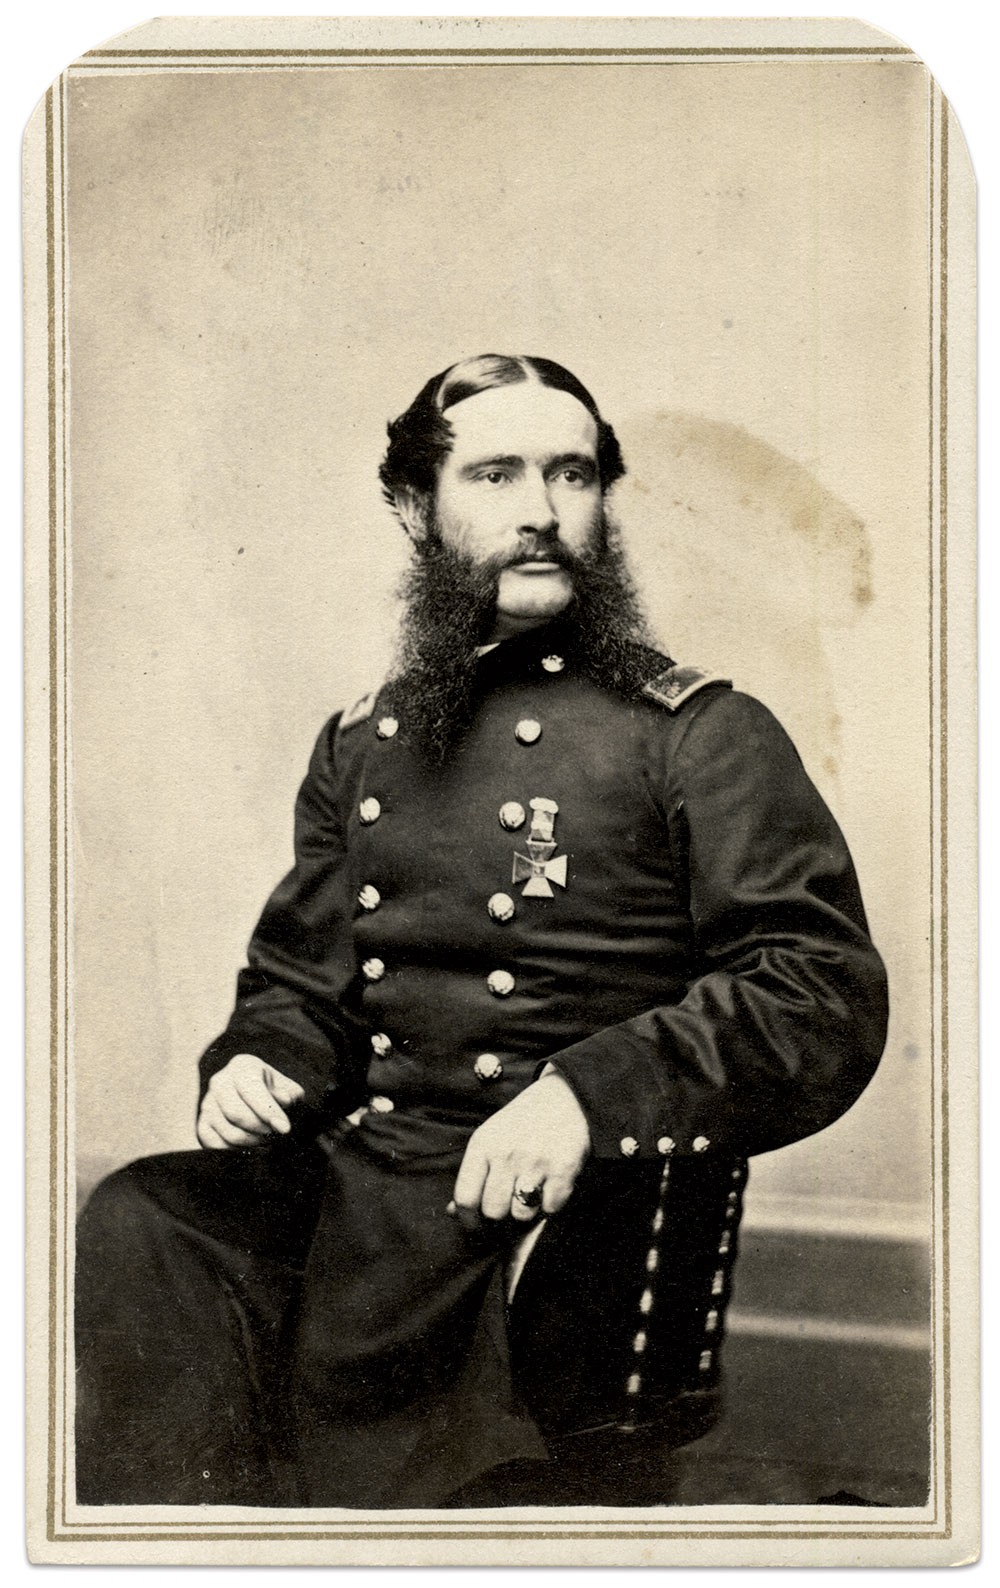 Edward Hill pictured as a lieutenant colonel, wearing a Fifth Corps badge. Carte de visite by Gottschalk Grelling of Detroit, Mich. Rick Carlile Collection.